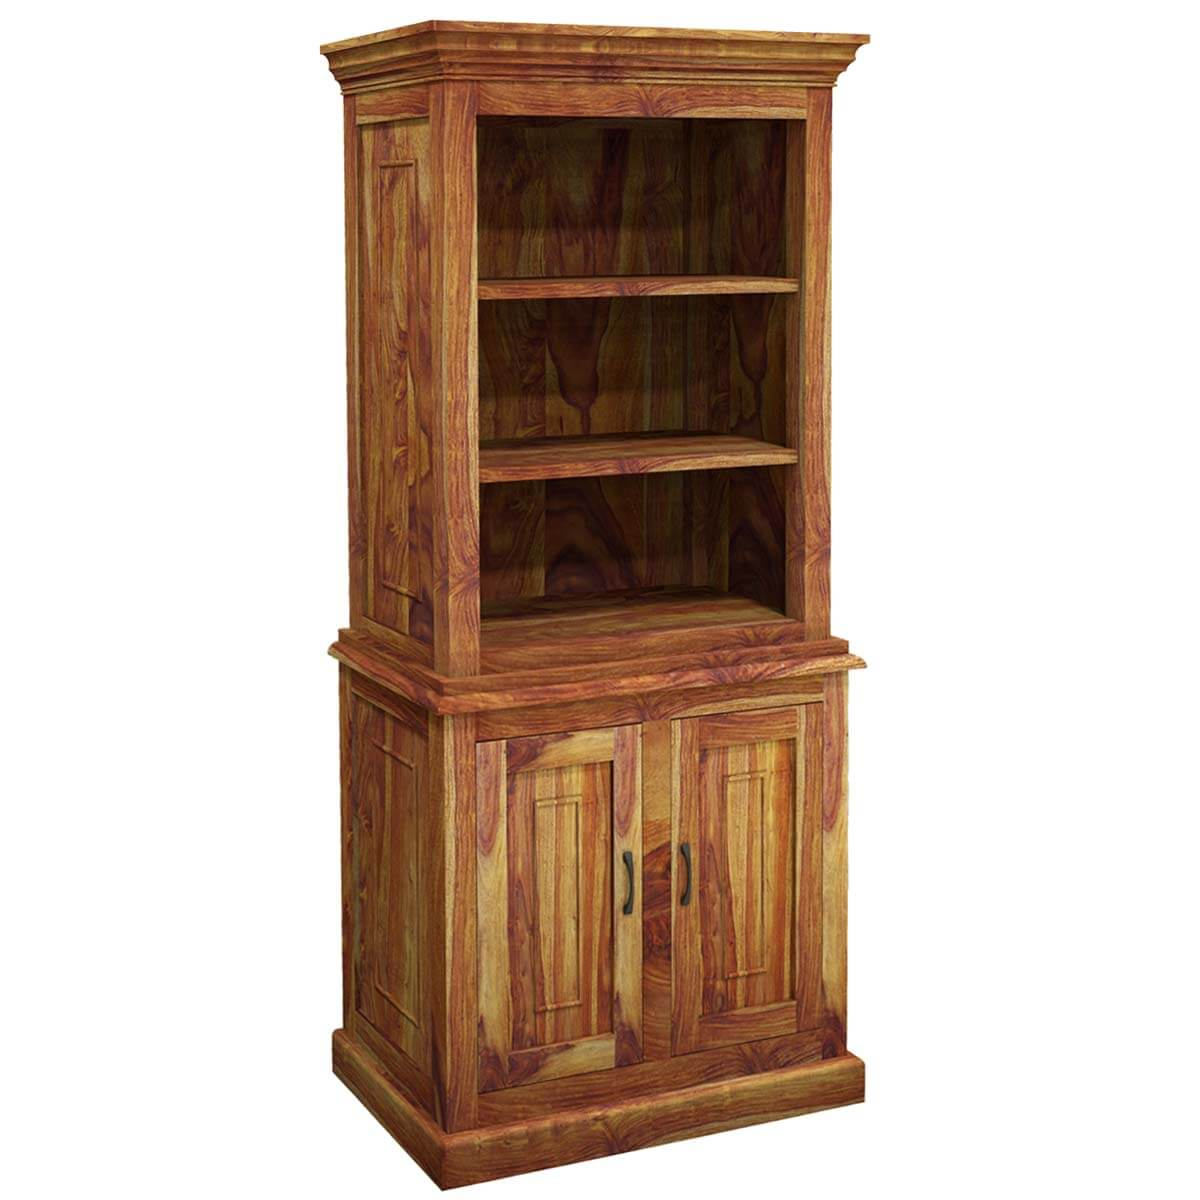 Wood Storage Cabinet With Shelves ~ Idaho modern solid wood standard bookcase storage cabinet